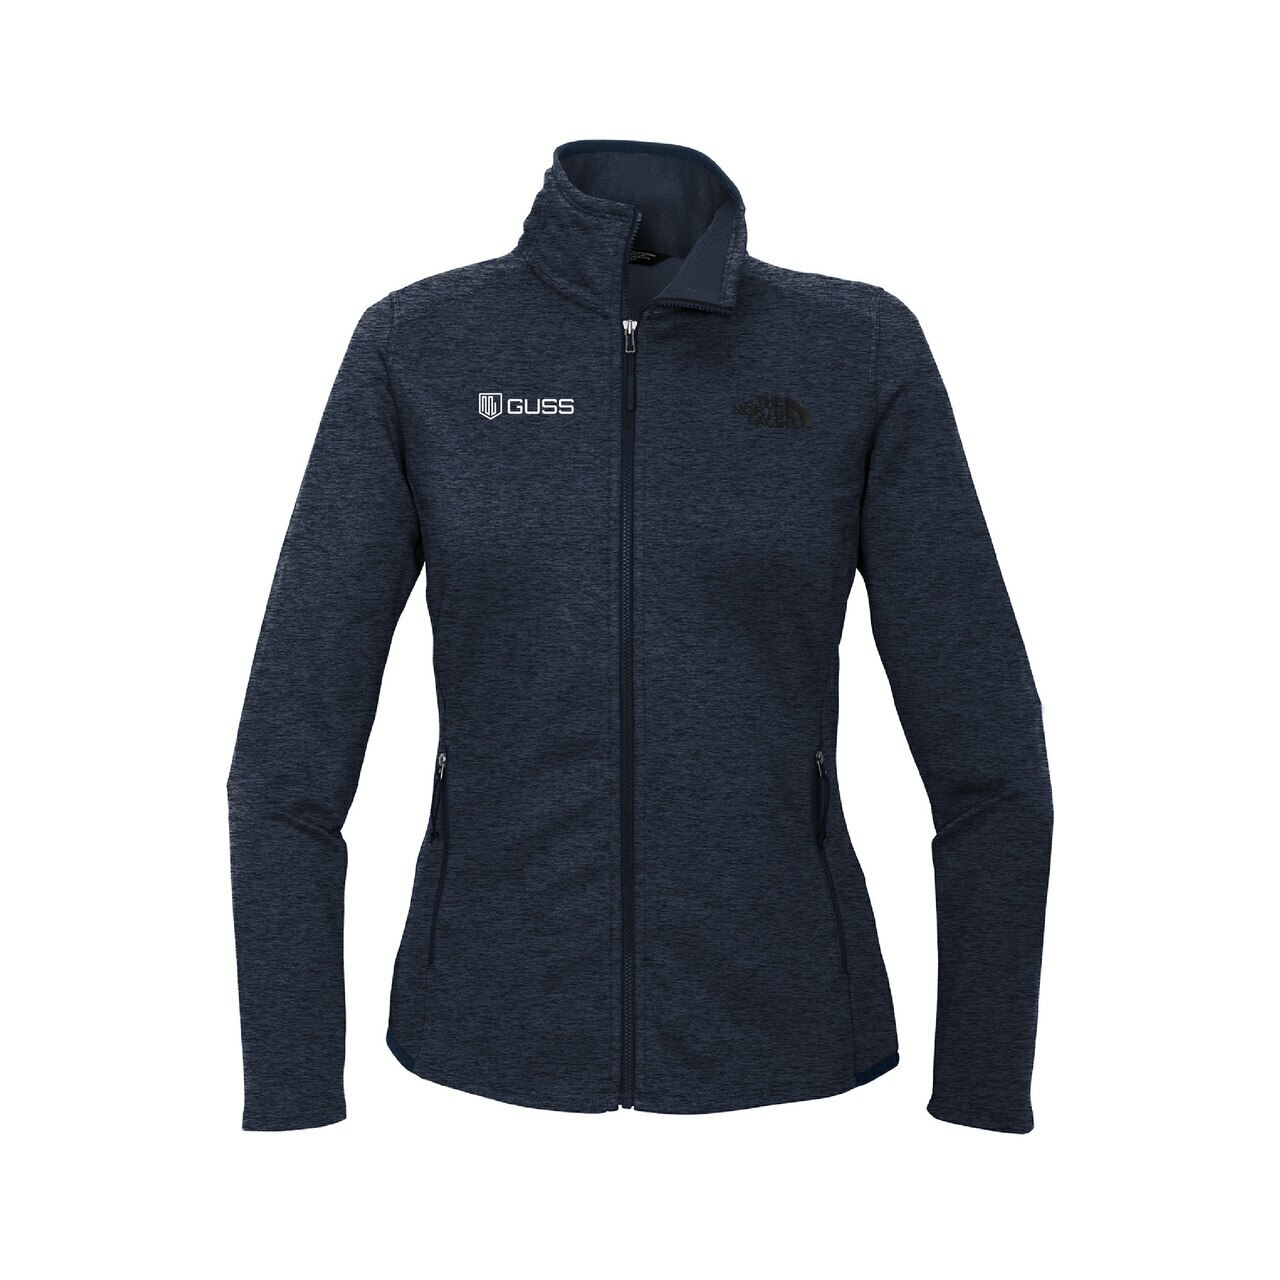 Women's - North Face Skyline Full-Zip Fleece Jacket - Urban Navy Heather